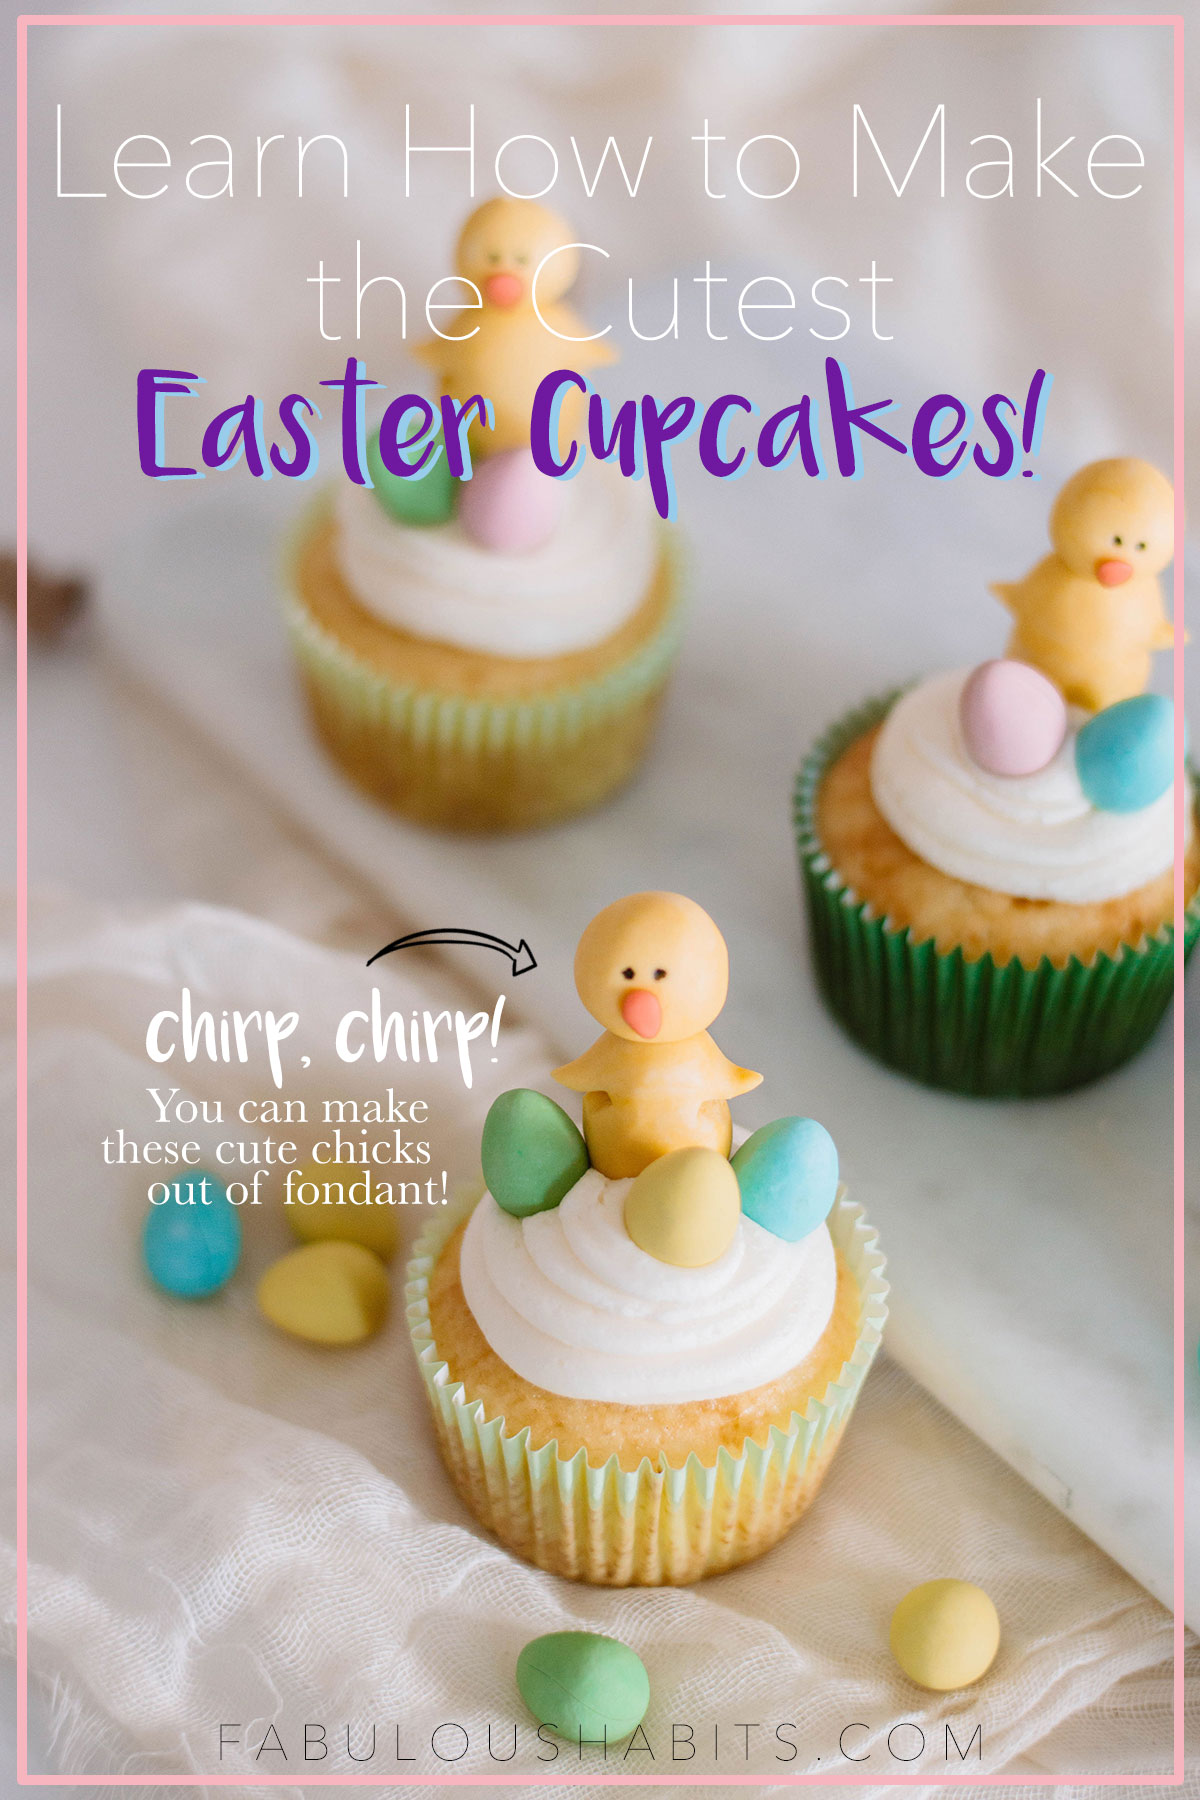 Learn how to make the cutest easter cupcakes: these vanilla cupcakes are topped with a fondant spring chick. What'cha waiting for?! Your kiddos will adore these! #eastercupcakes